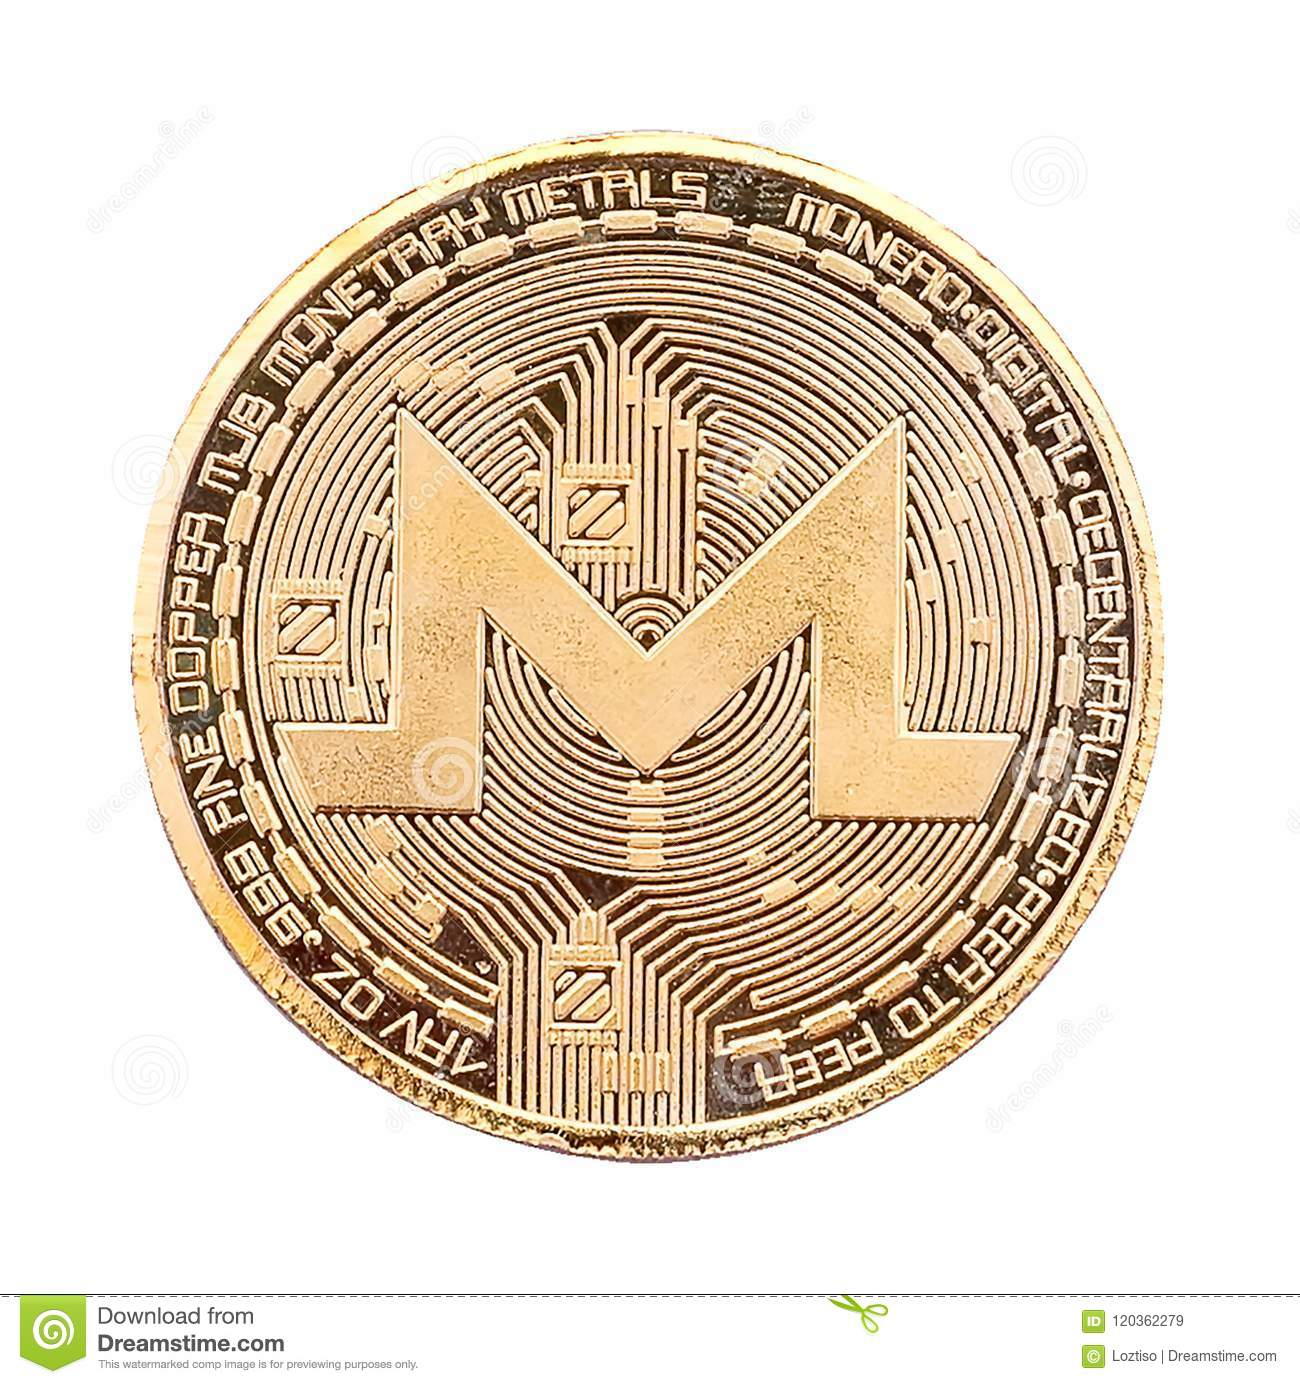 monero crypto currency stocks